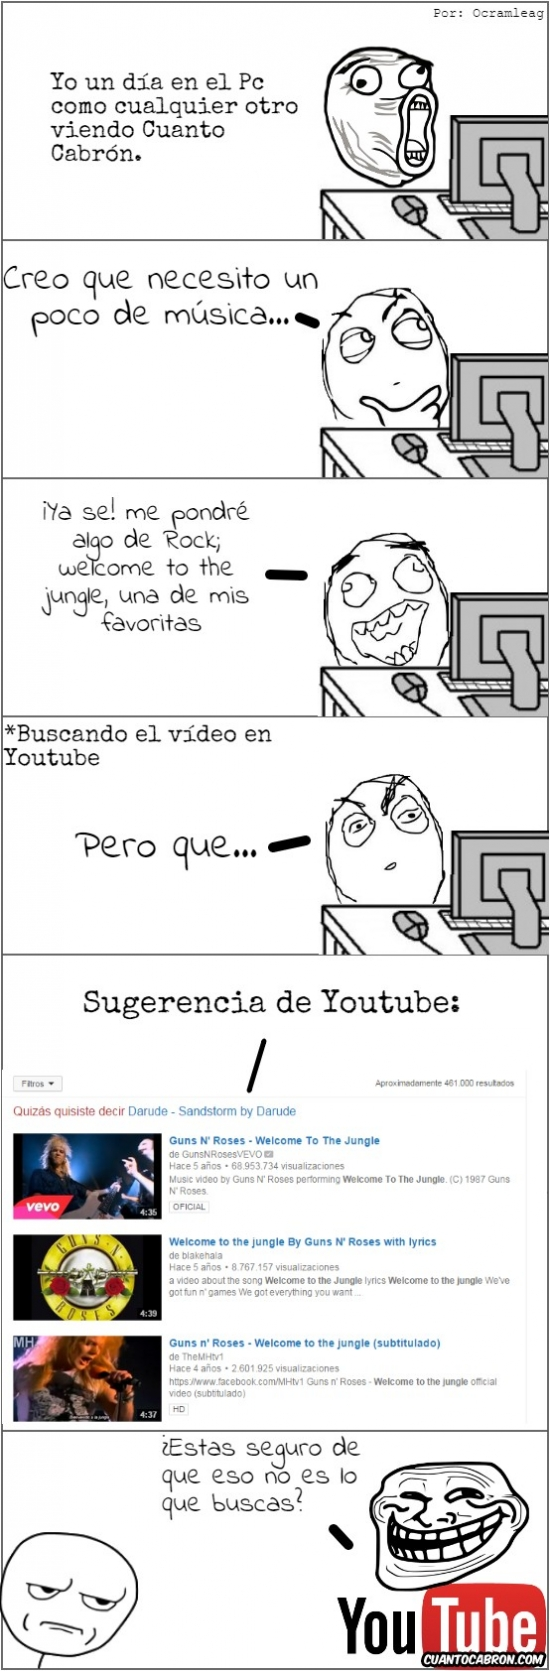 Kidding_me - Youtube y sus ganas de trollearnos a todos